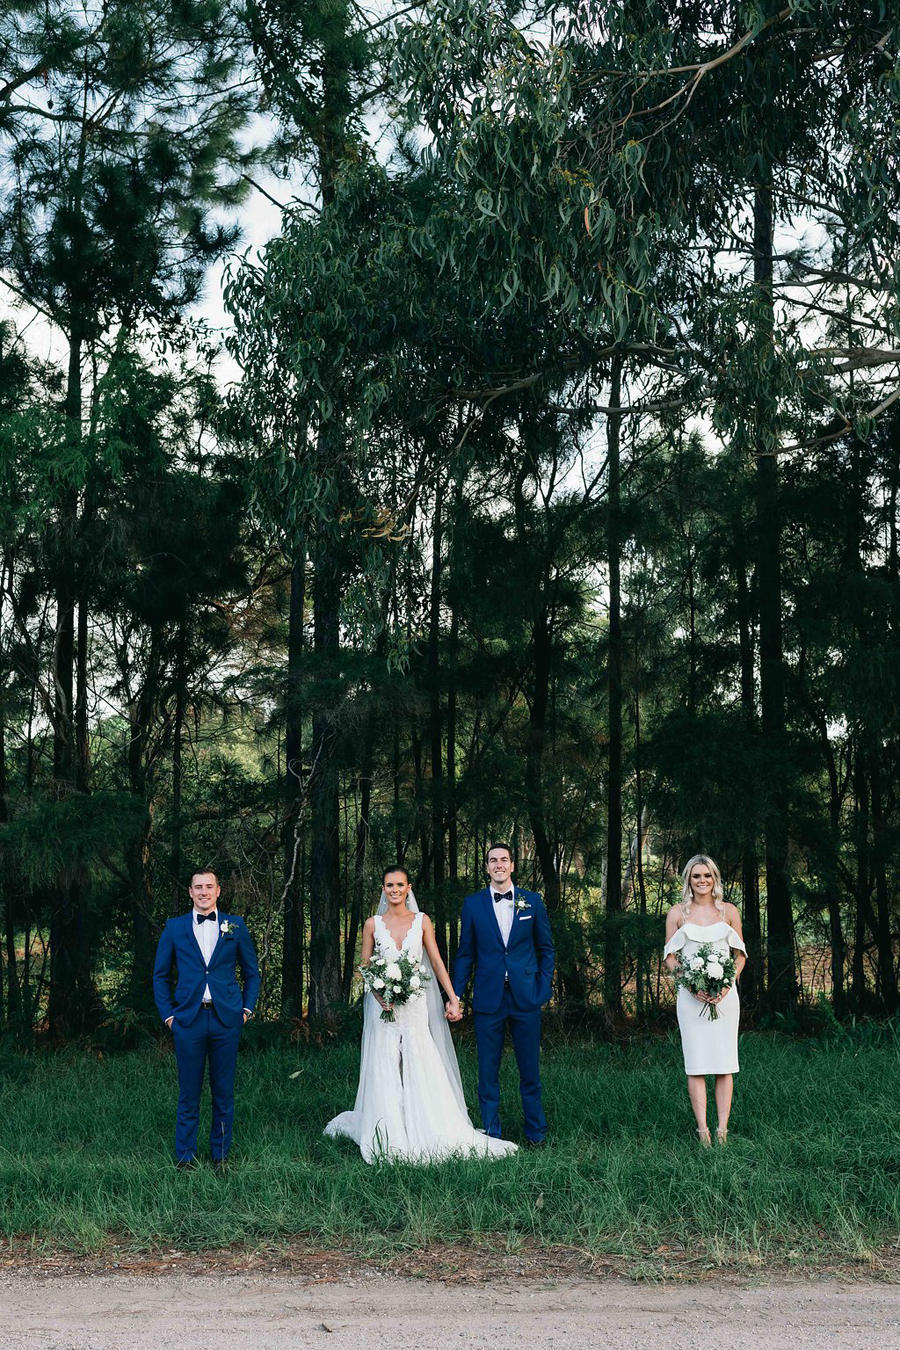 tweed-coast-wedding-venue-osteria-casuarina-real-wedding-amy-alex028.jpg